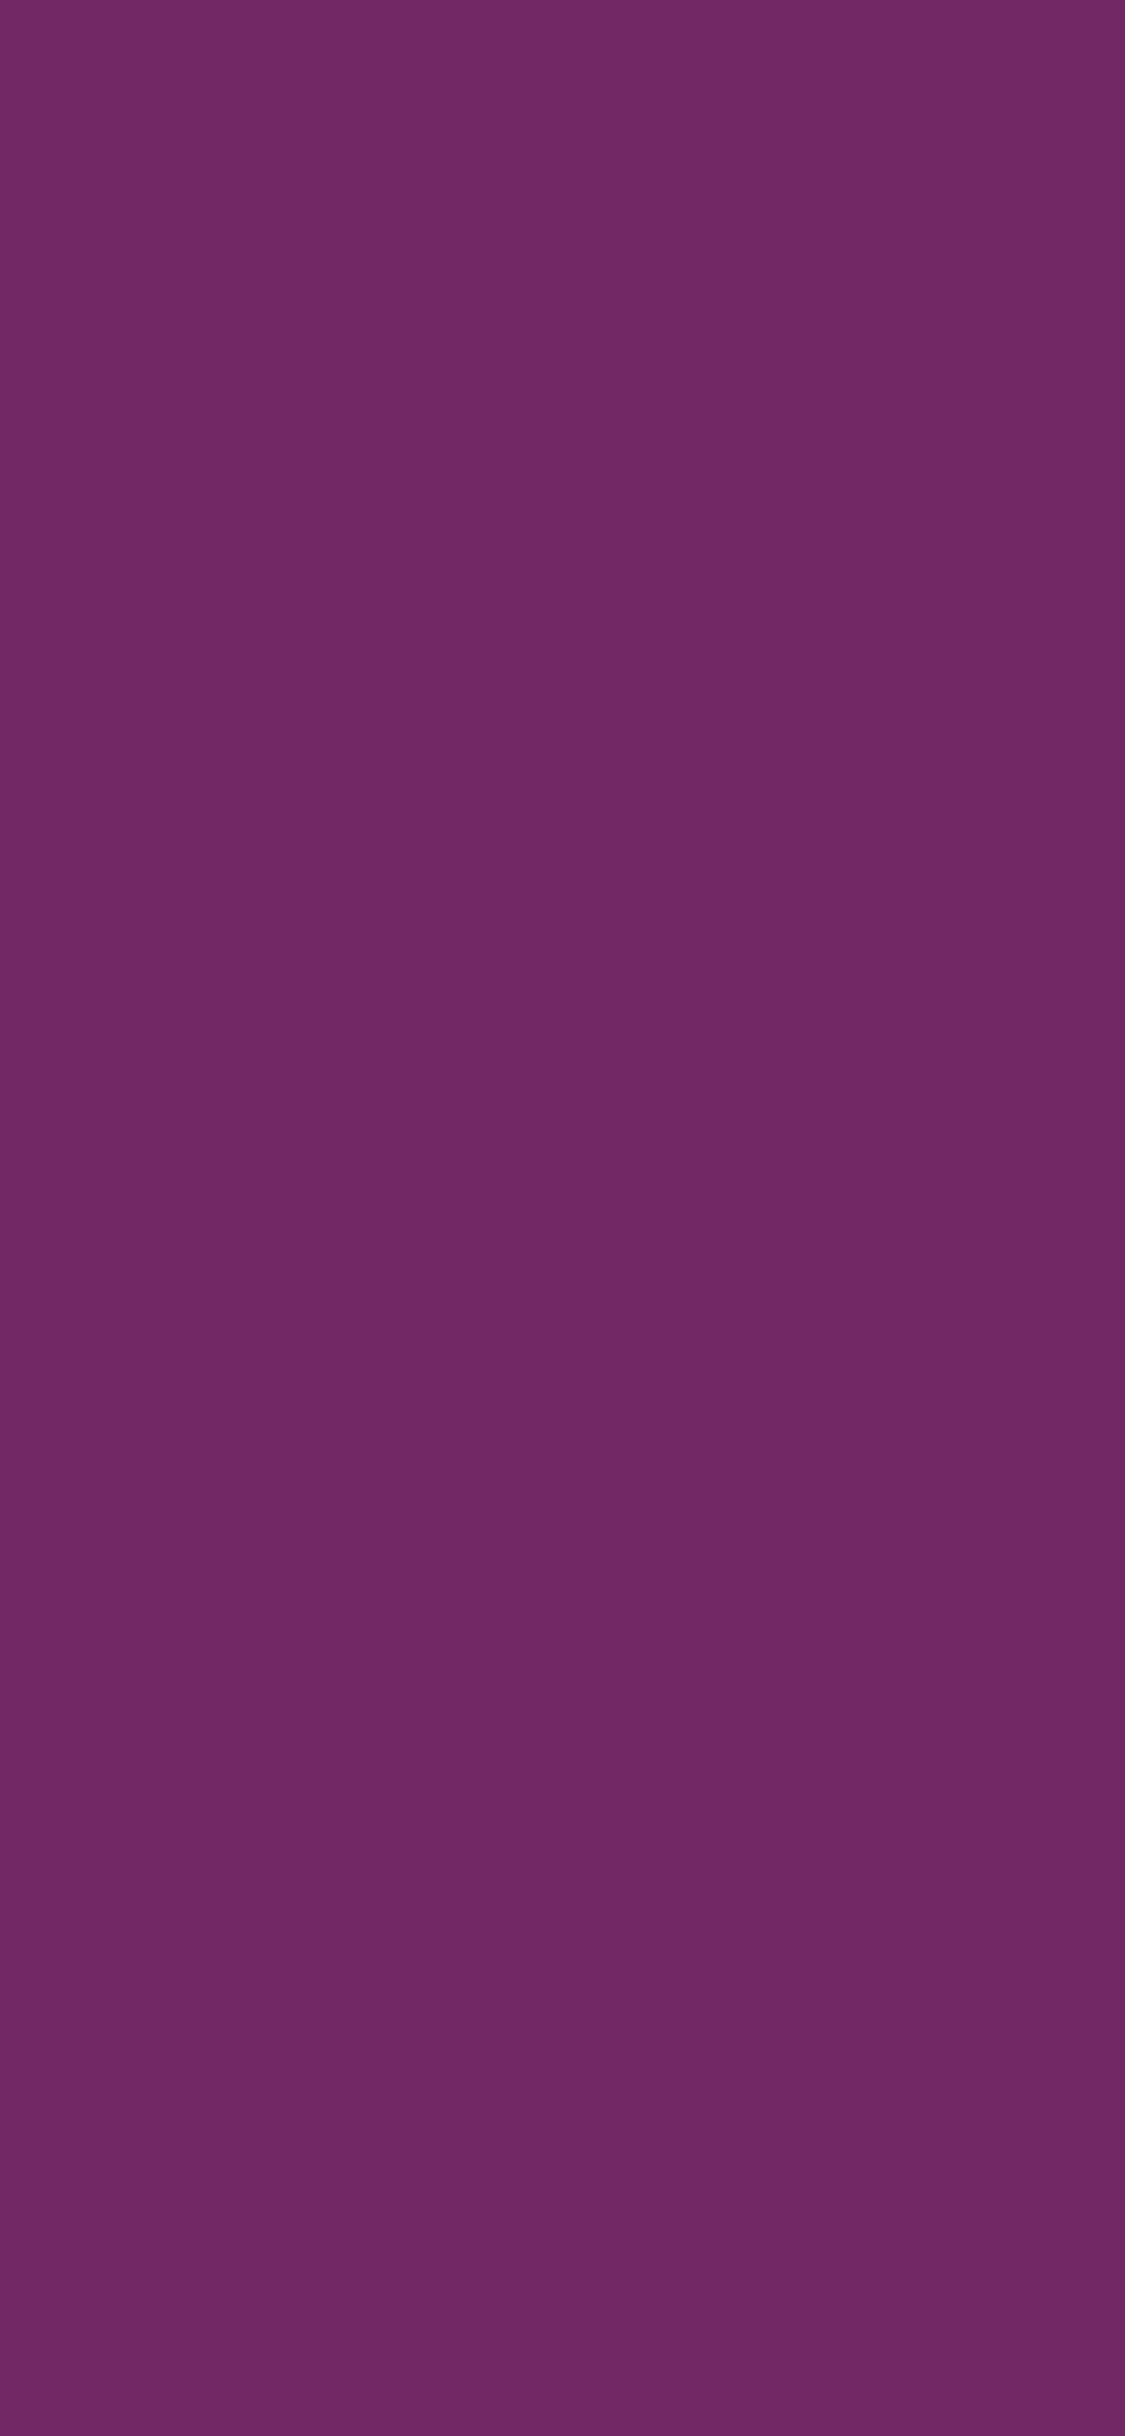 1125x2436 Byzantium Solid Color Background